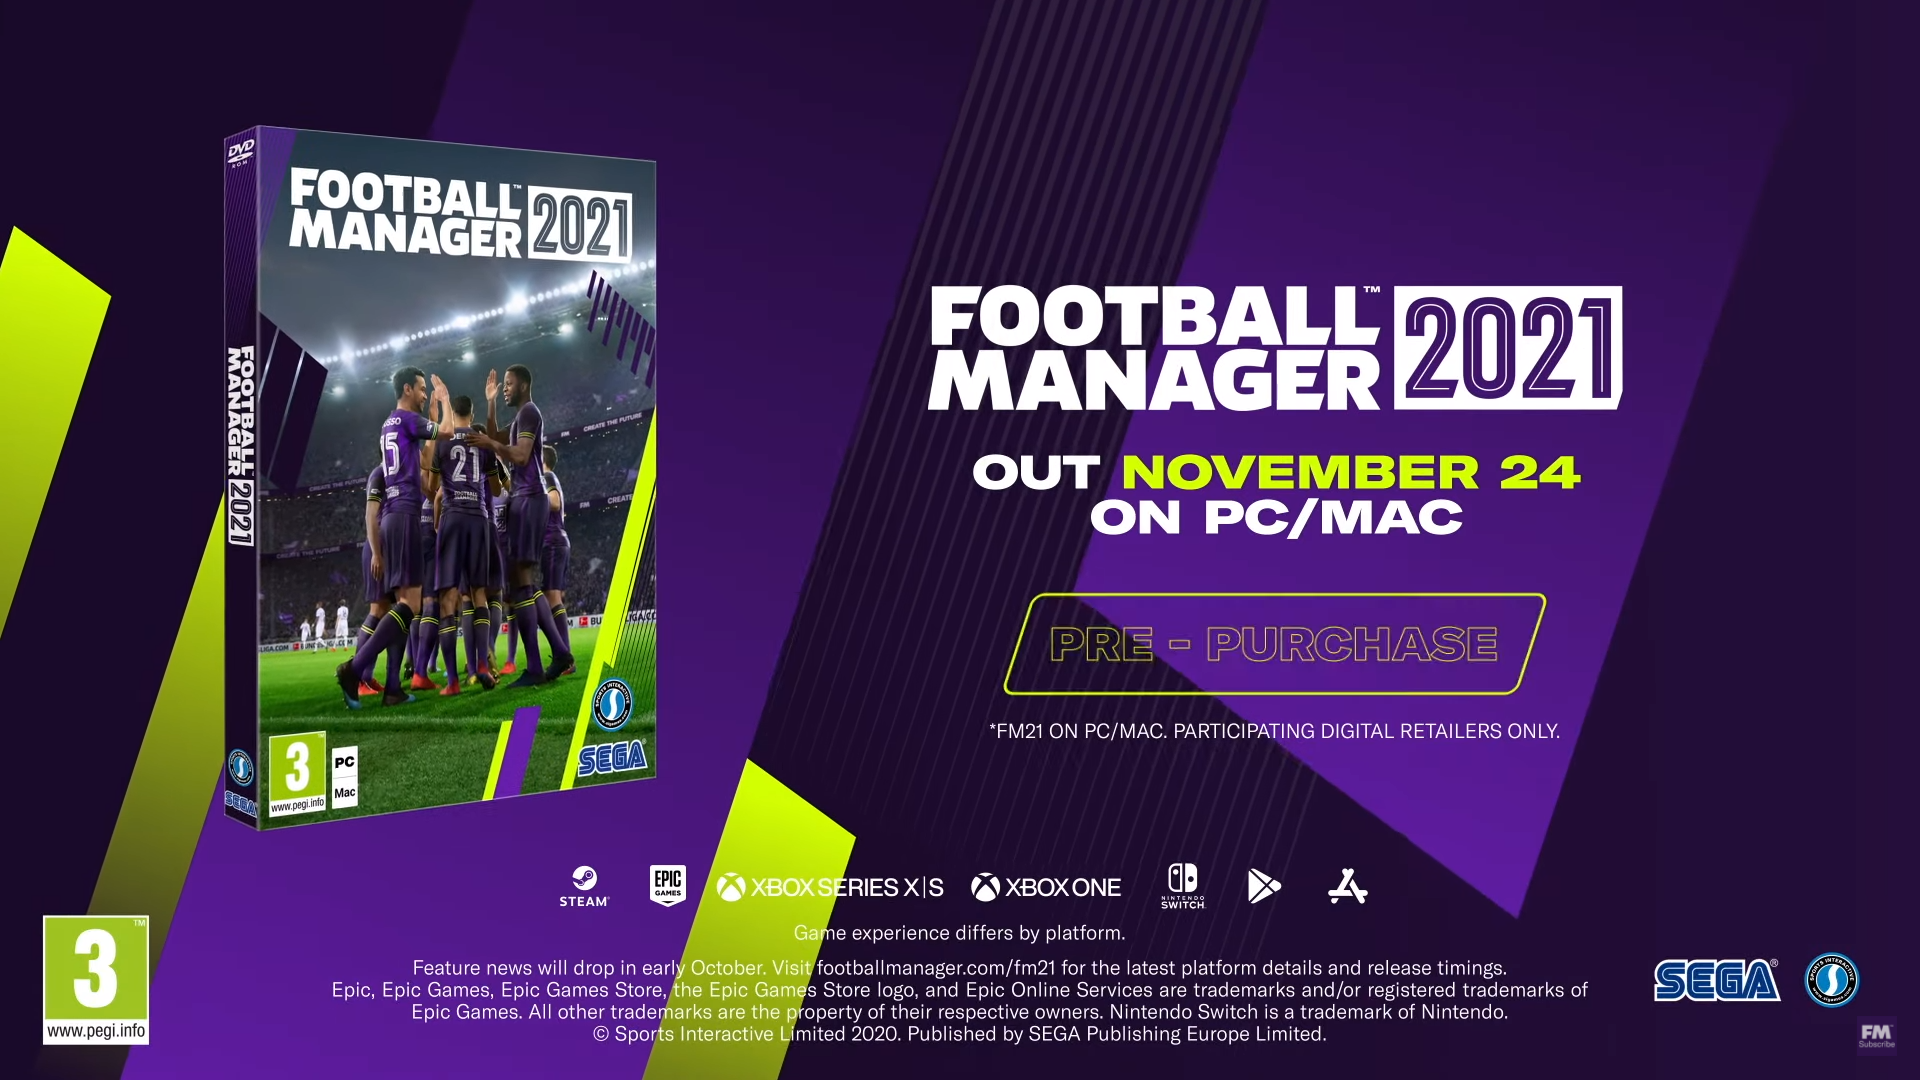 FM 2021 release date, news and features